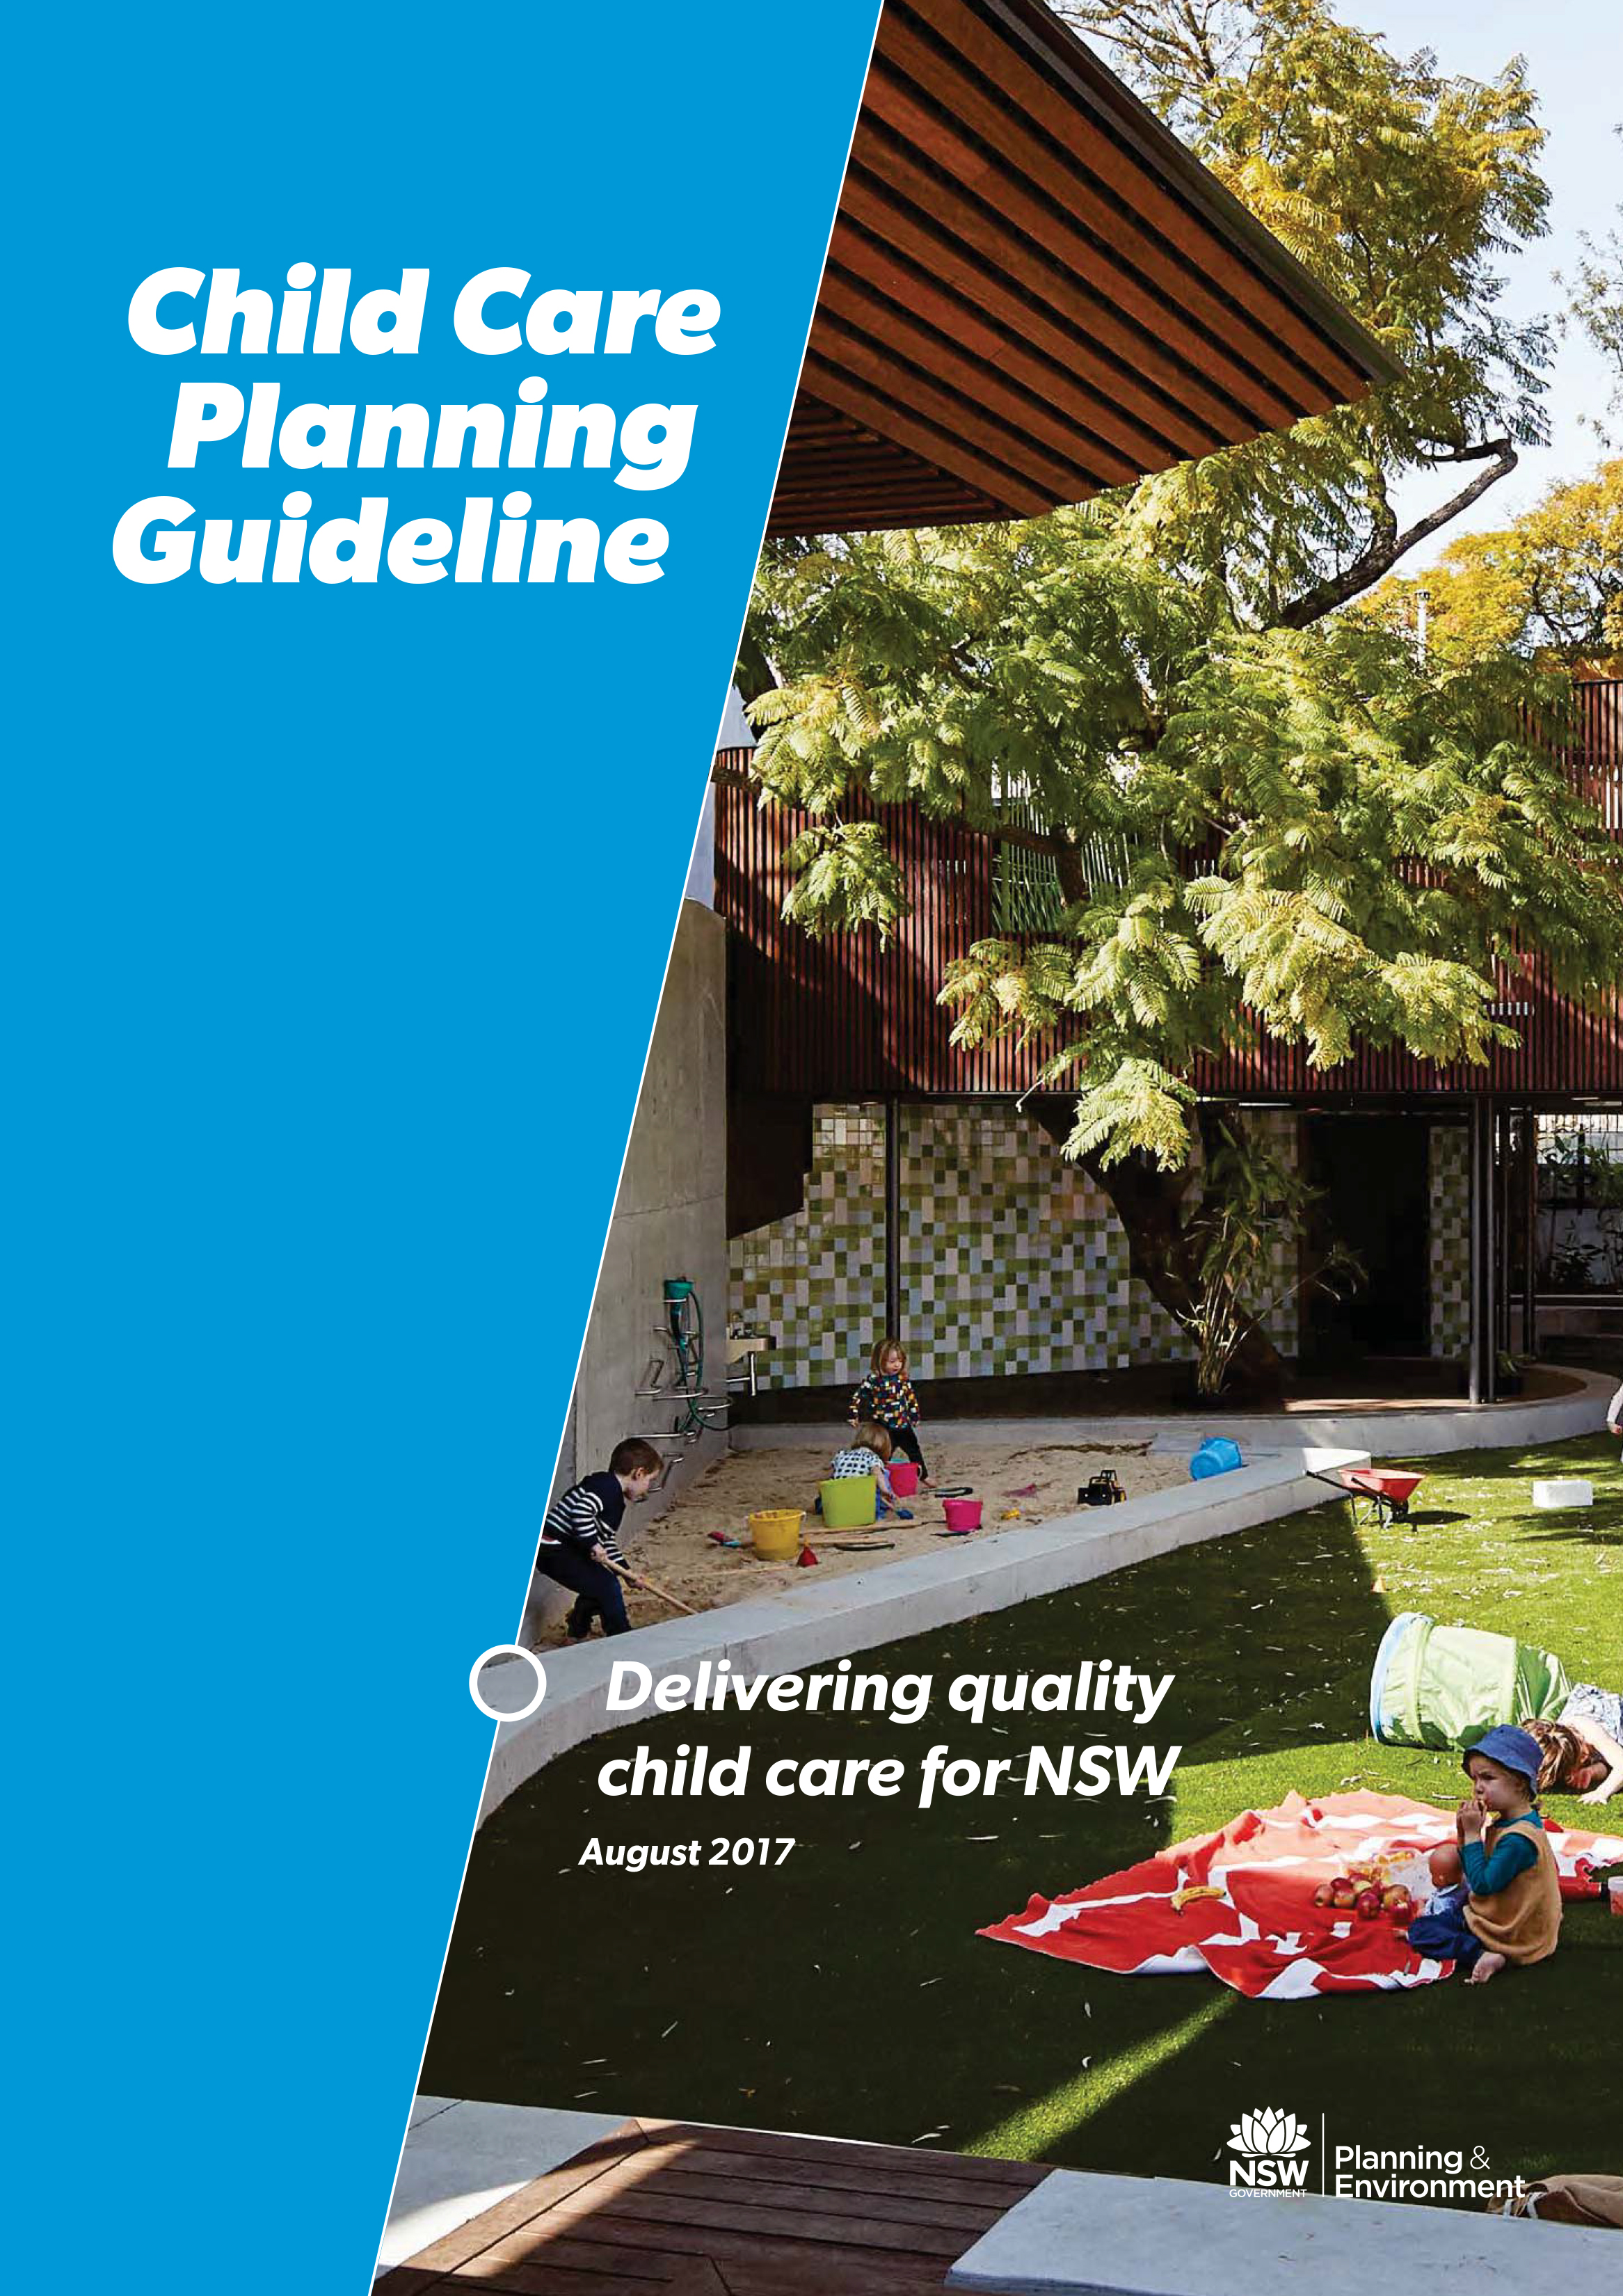 EDUCATION SEPP AND CHILDCARE GUIDELINES